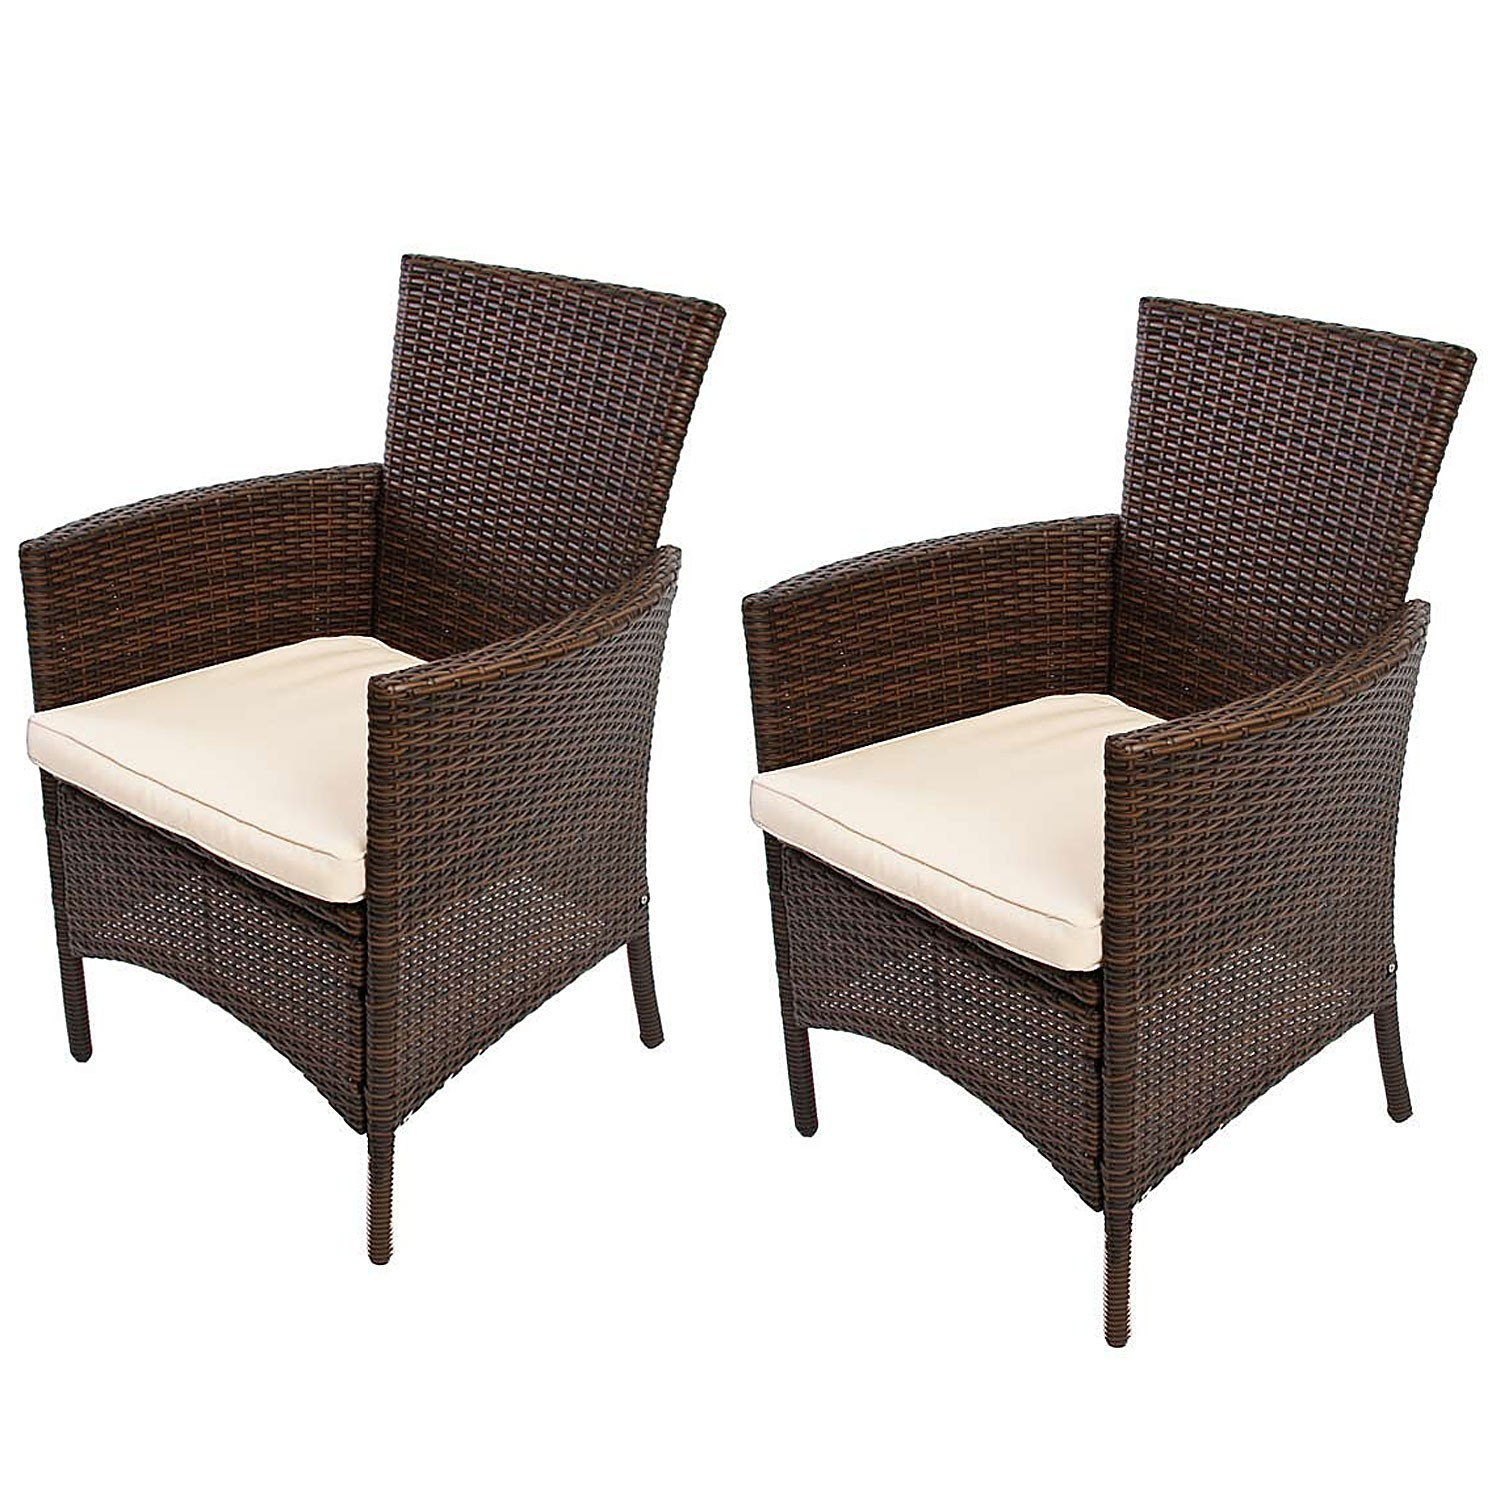 fauteuils lot de 2 luxe poly rotin aluminium jardin chaise. Black Bedroom Furniture Sets. Home Design Ideas